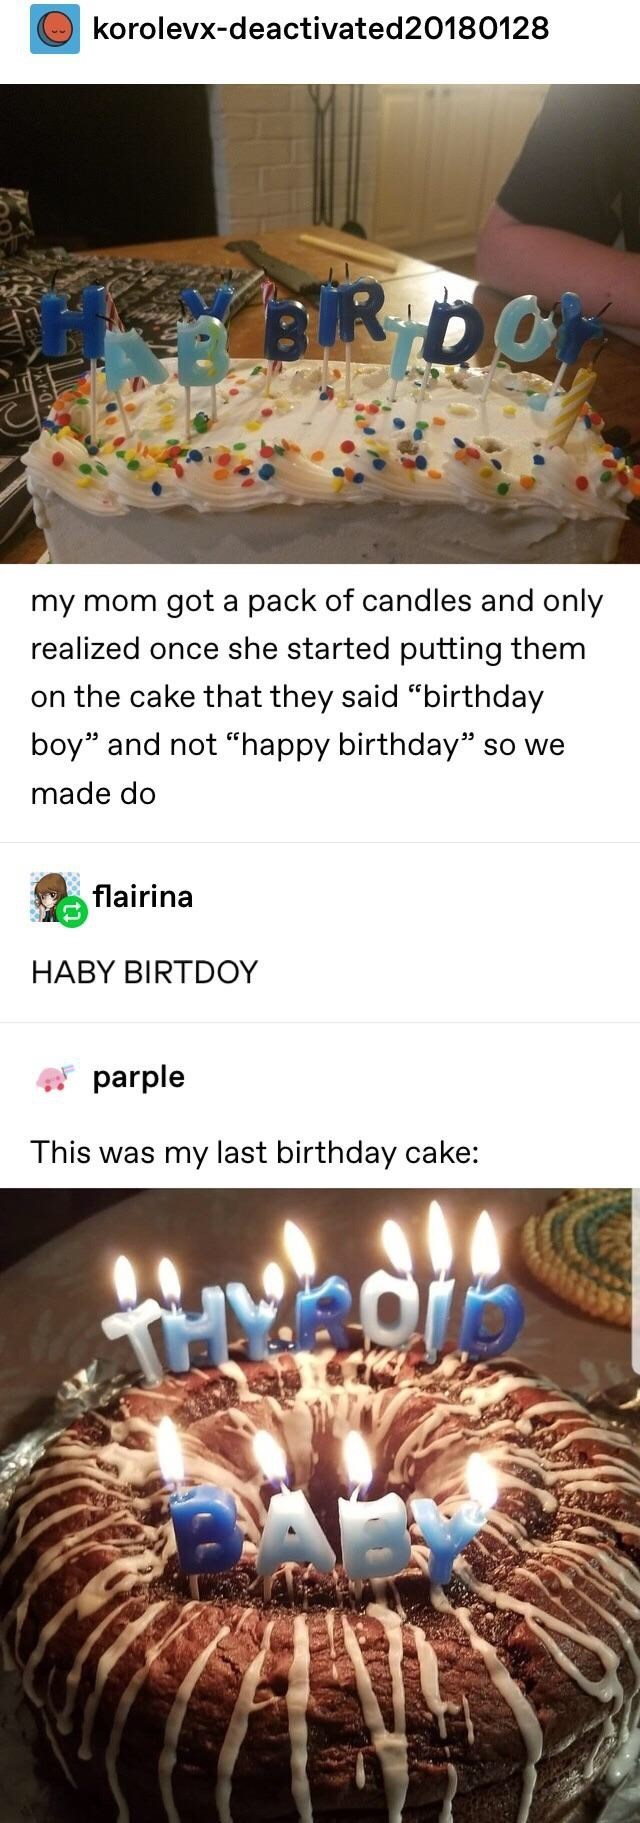 """Candle - korolevx-deactivated20180128 my mom got a pack of candles and only realized once she started putting them on the cake that they said """"birthday boy"""" and not """"happy birthday"""" so we made do flairina HABY BIRTDOY parple This was my last birthday cake:"""